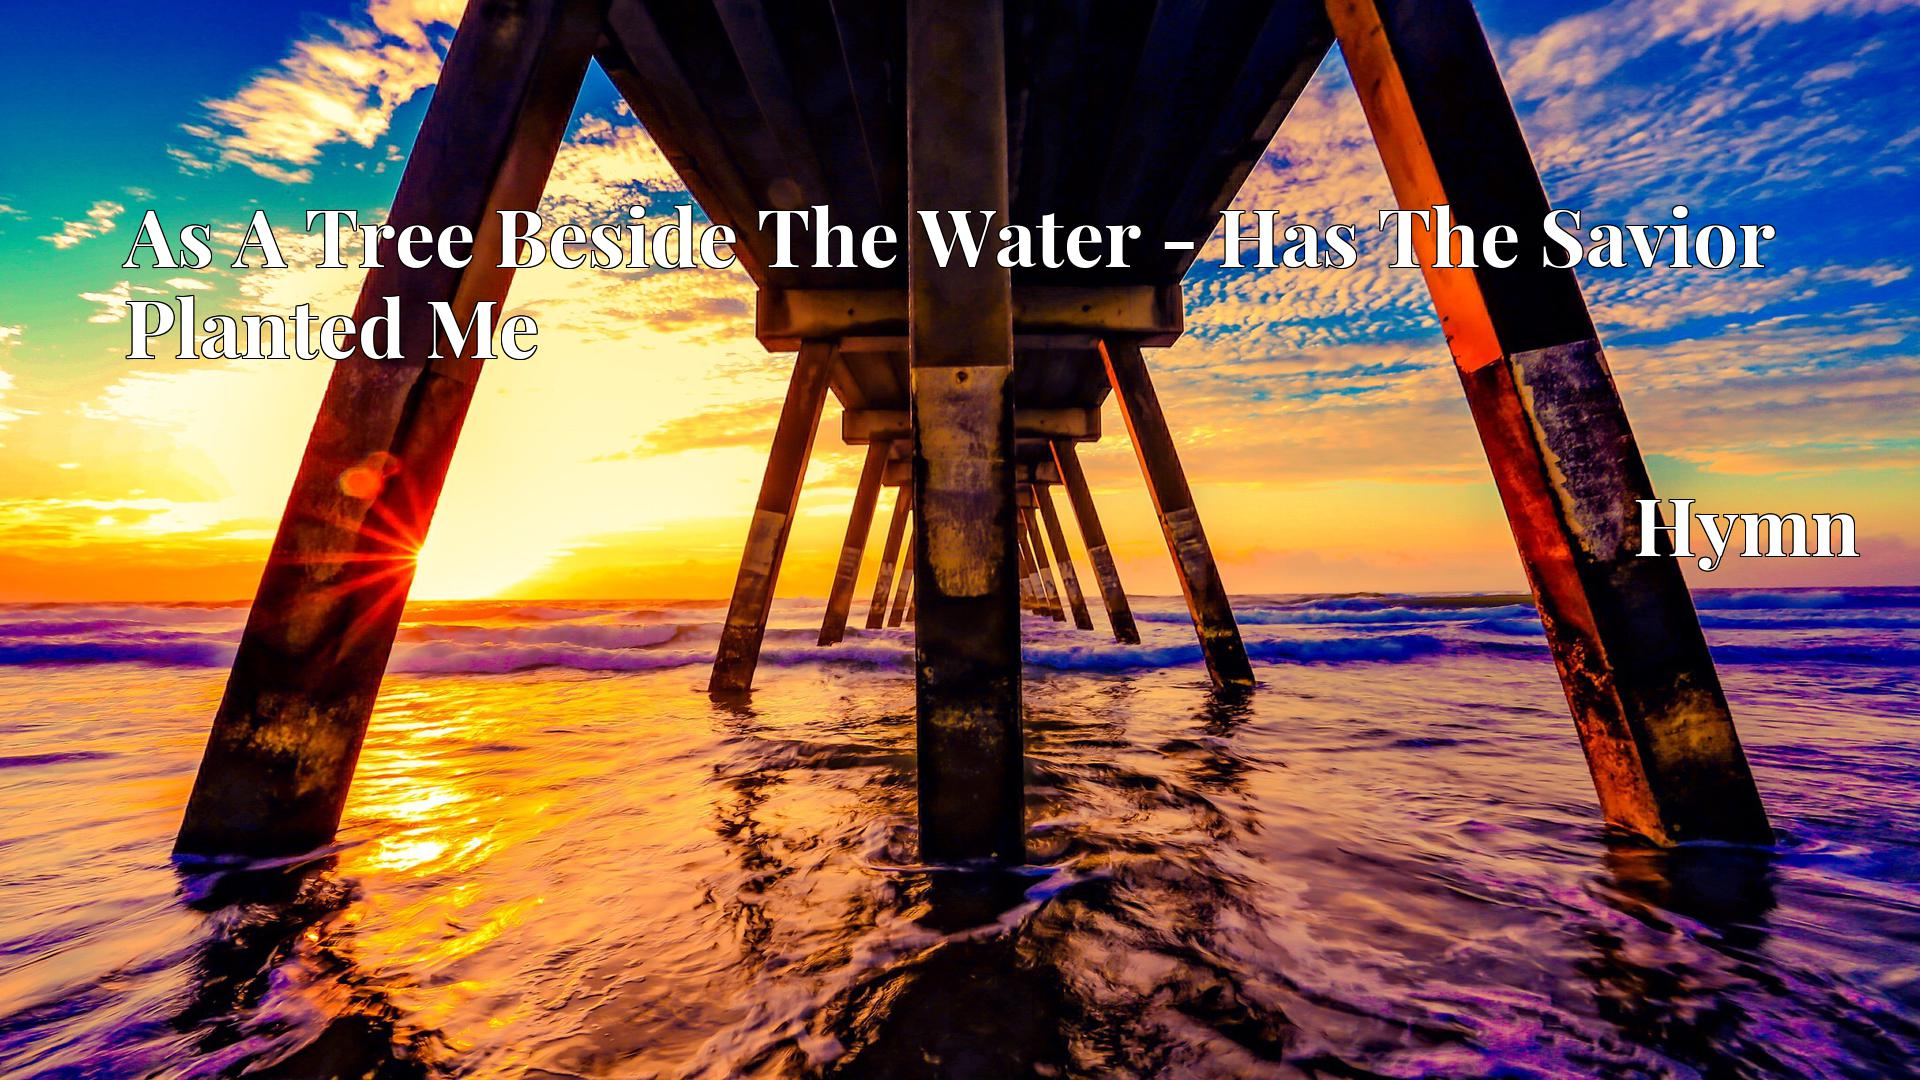 As A Tree Beside The Water - Has The Savior Planted Me - Hymn